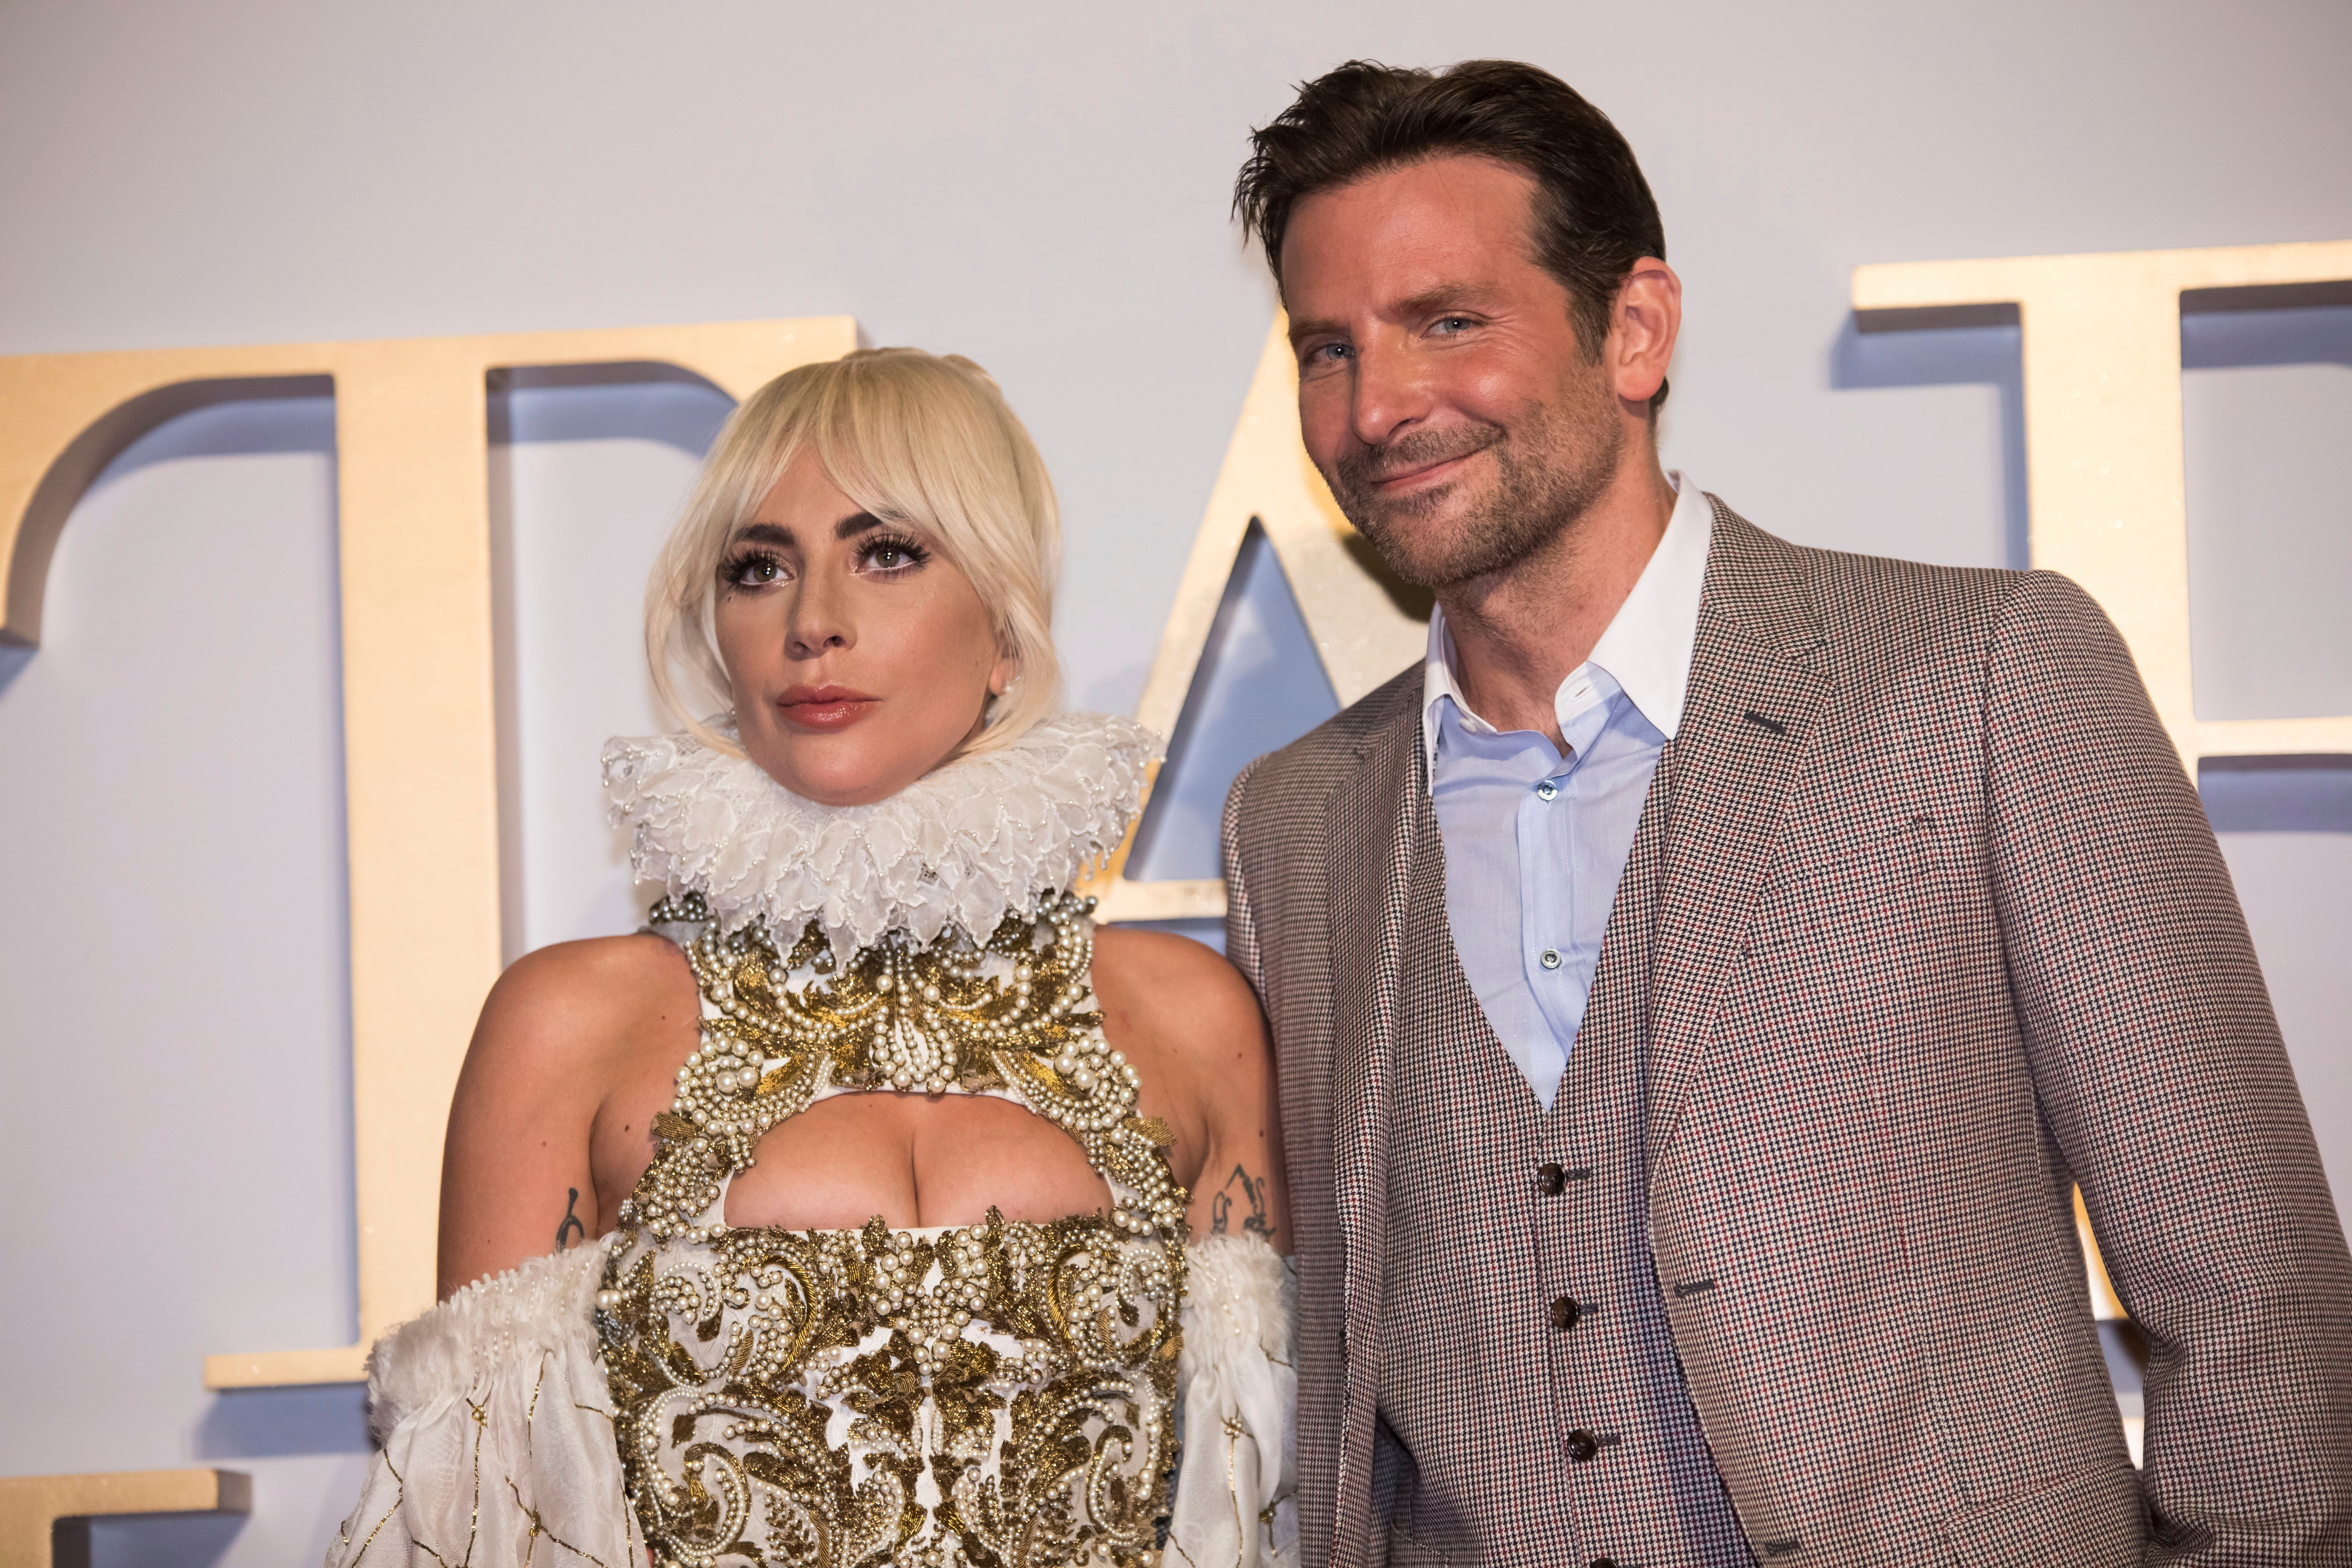 Oscars 2019 Lady Gaga Bradley Cooper To Sing Shallow At Ceremony